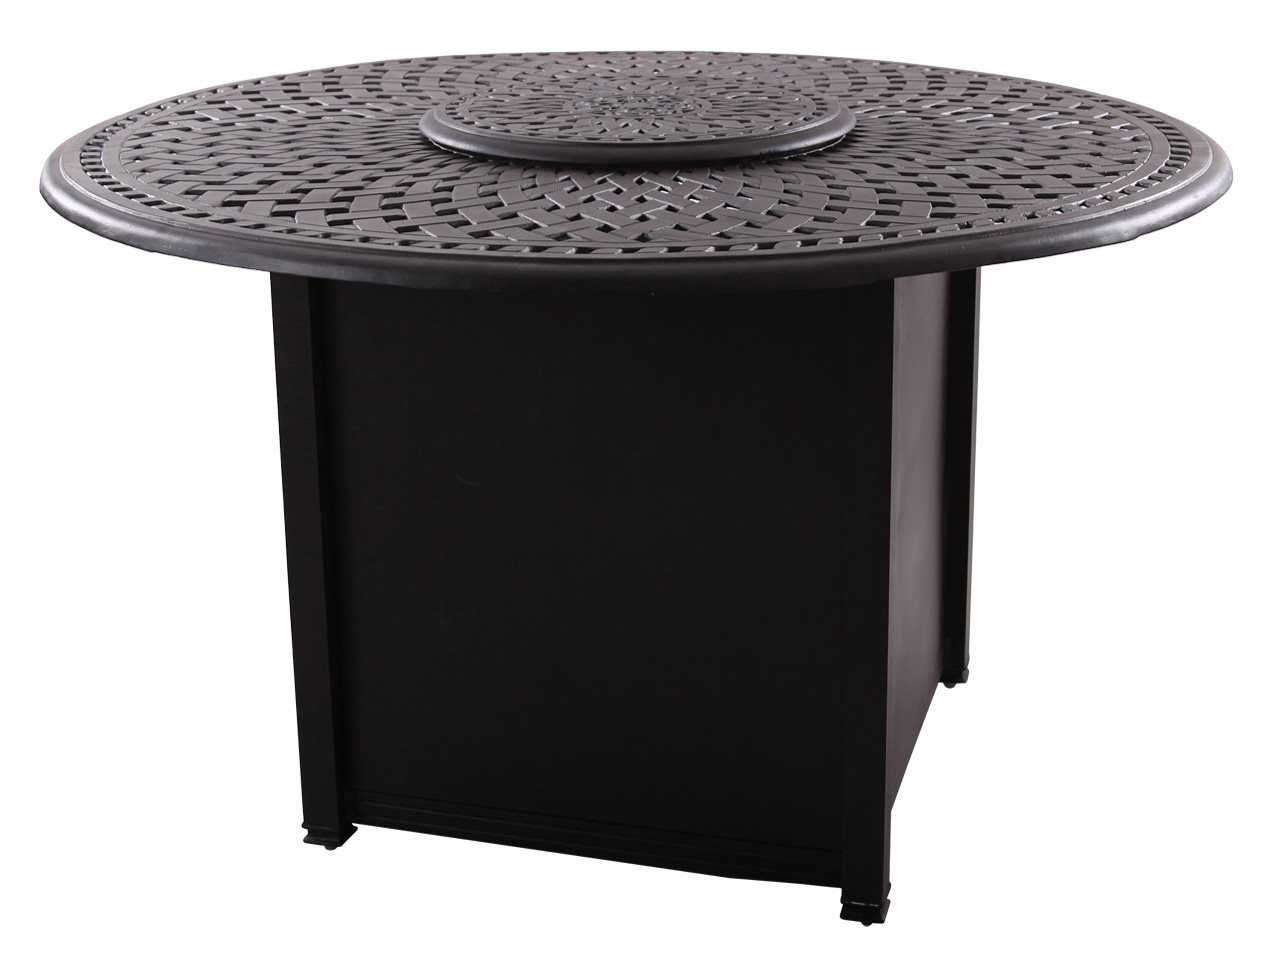 darlee outdoor living series 60 cast aluminum 60 round propane fire pit dining table 201060 gd. Black Bedroom Furniture Sets. Home Design Ideas